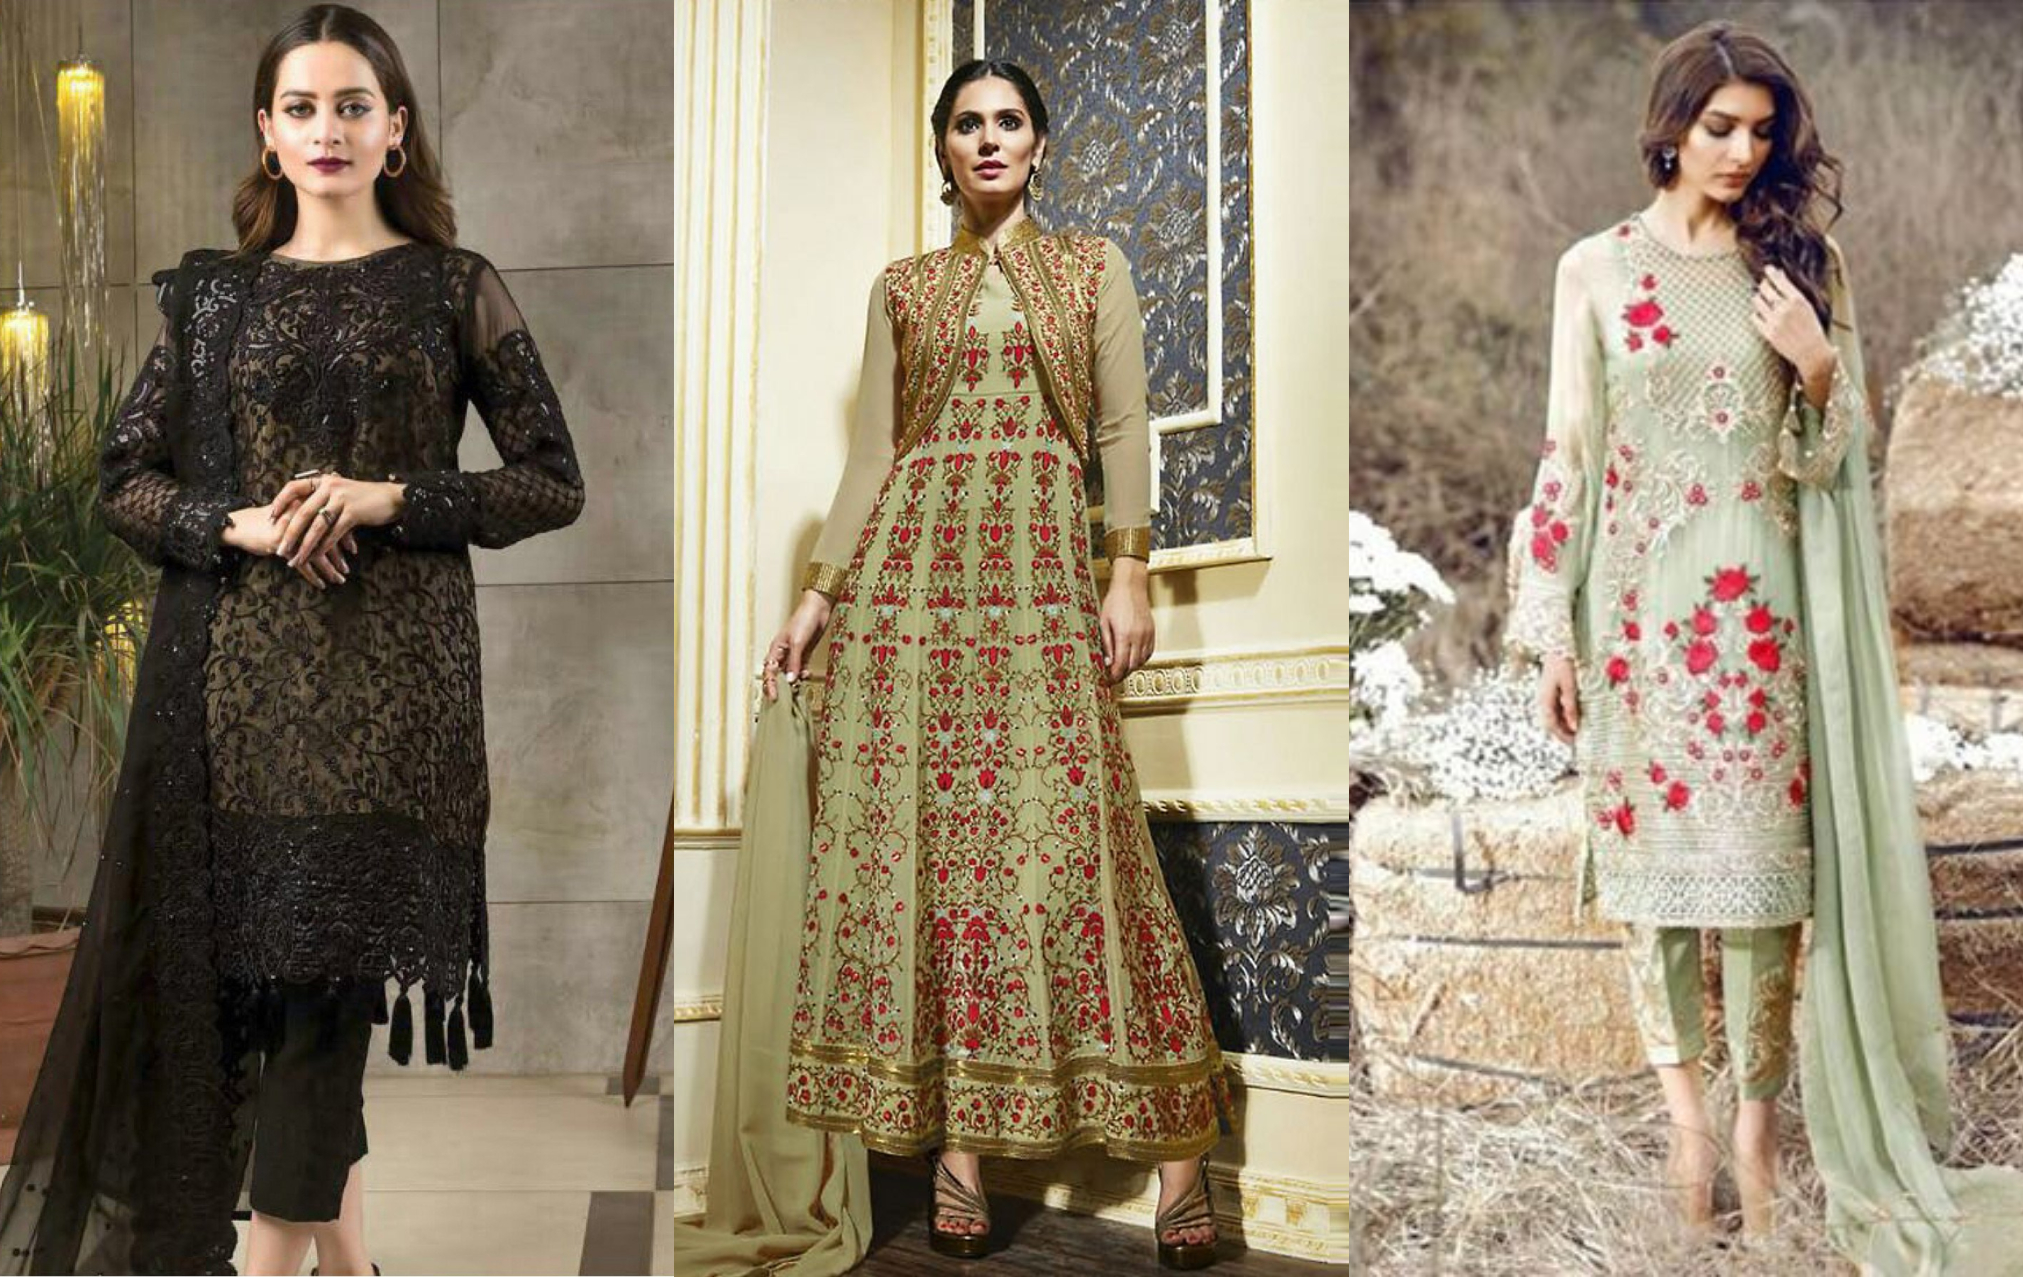 Now you can buy a shalwar kameez through the web